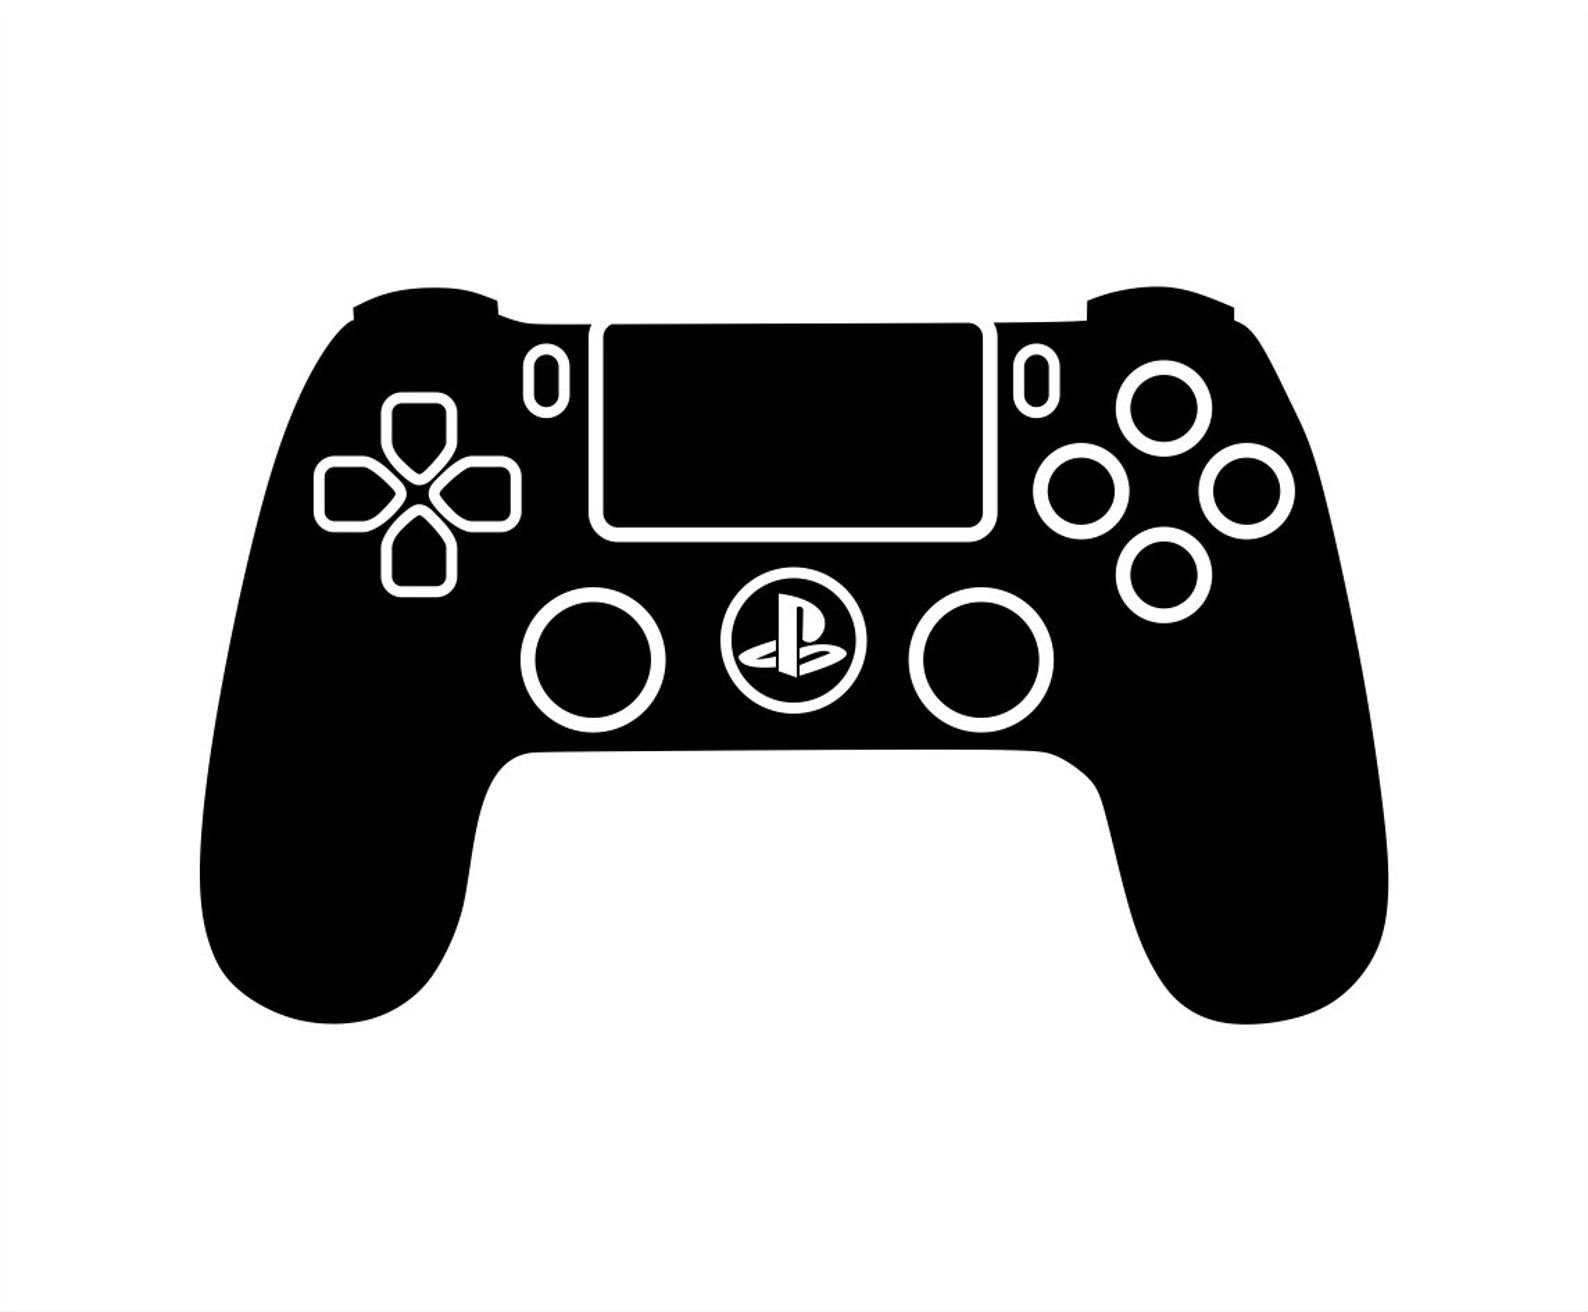 Controller Buttons Sticker By Ph Design In 2021 Stickers Vinyl Decal Stickers Vinyl Sticker